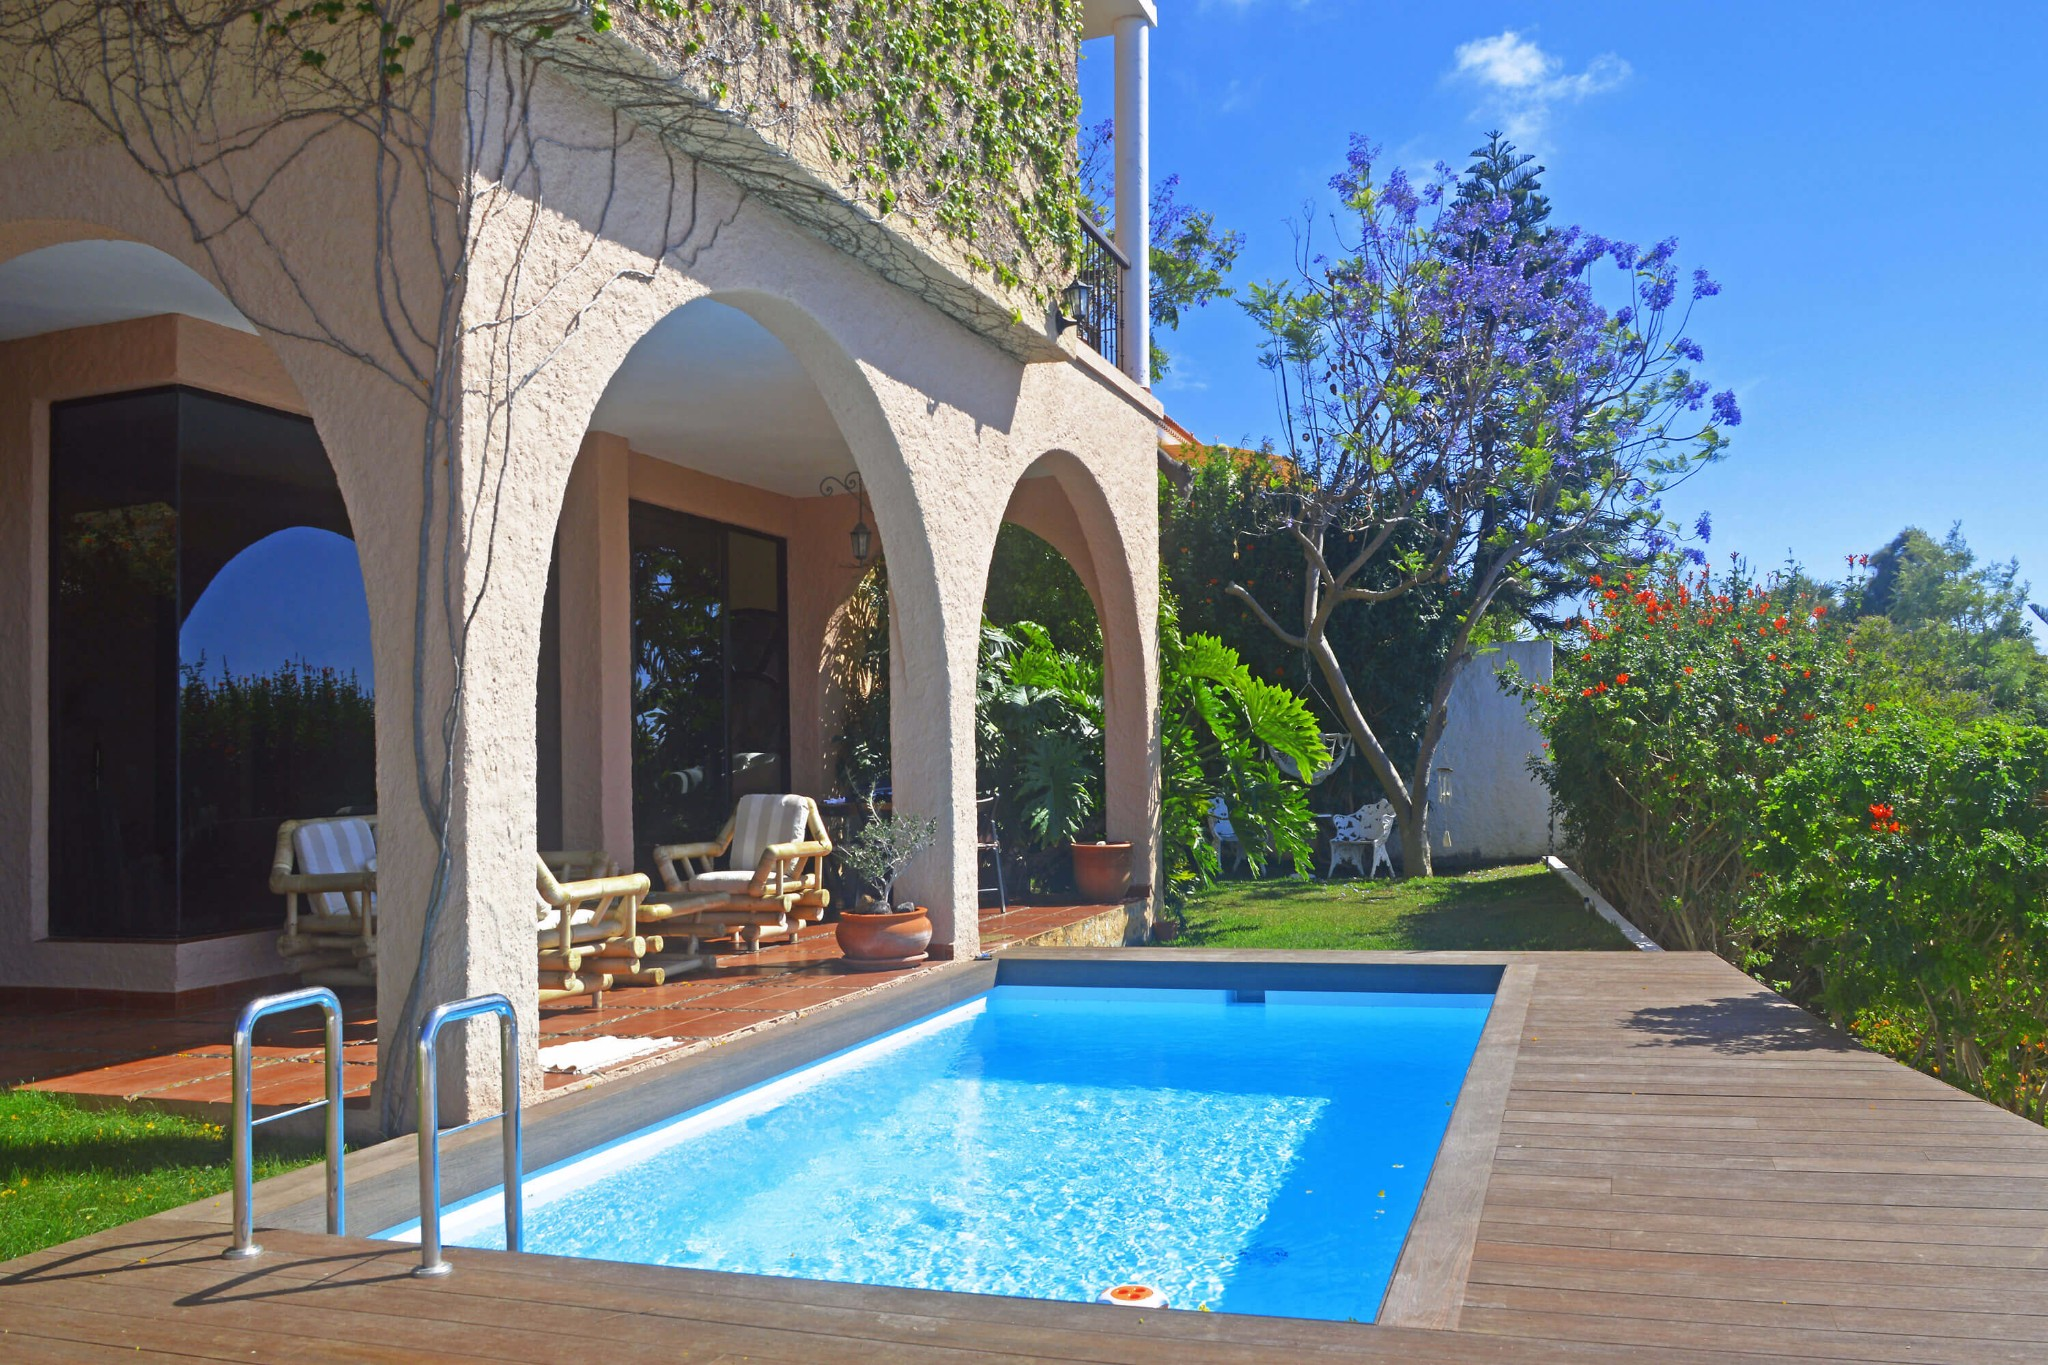 Spacious luxury villa for rent with 3 bedrooms, private pool and sea views located in El Sauzal